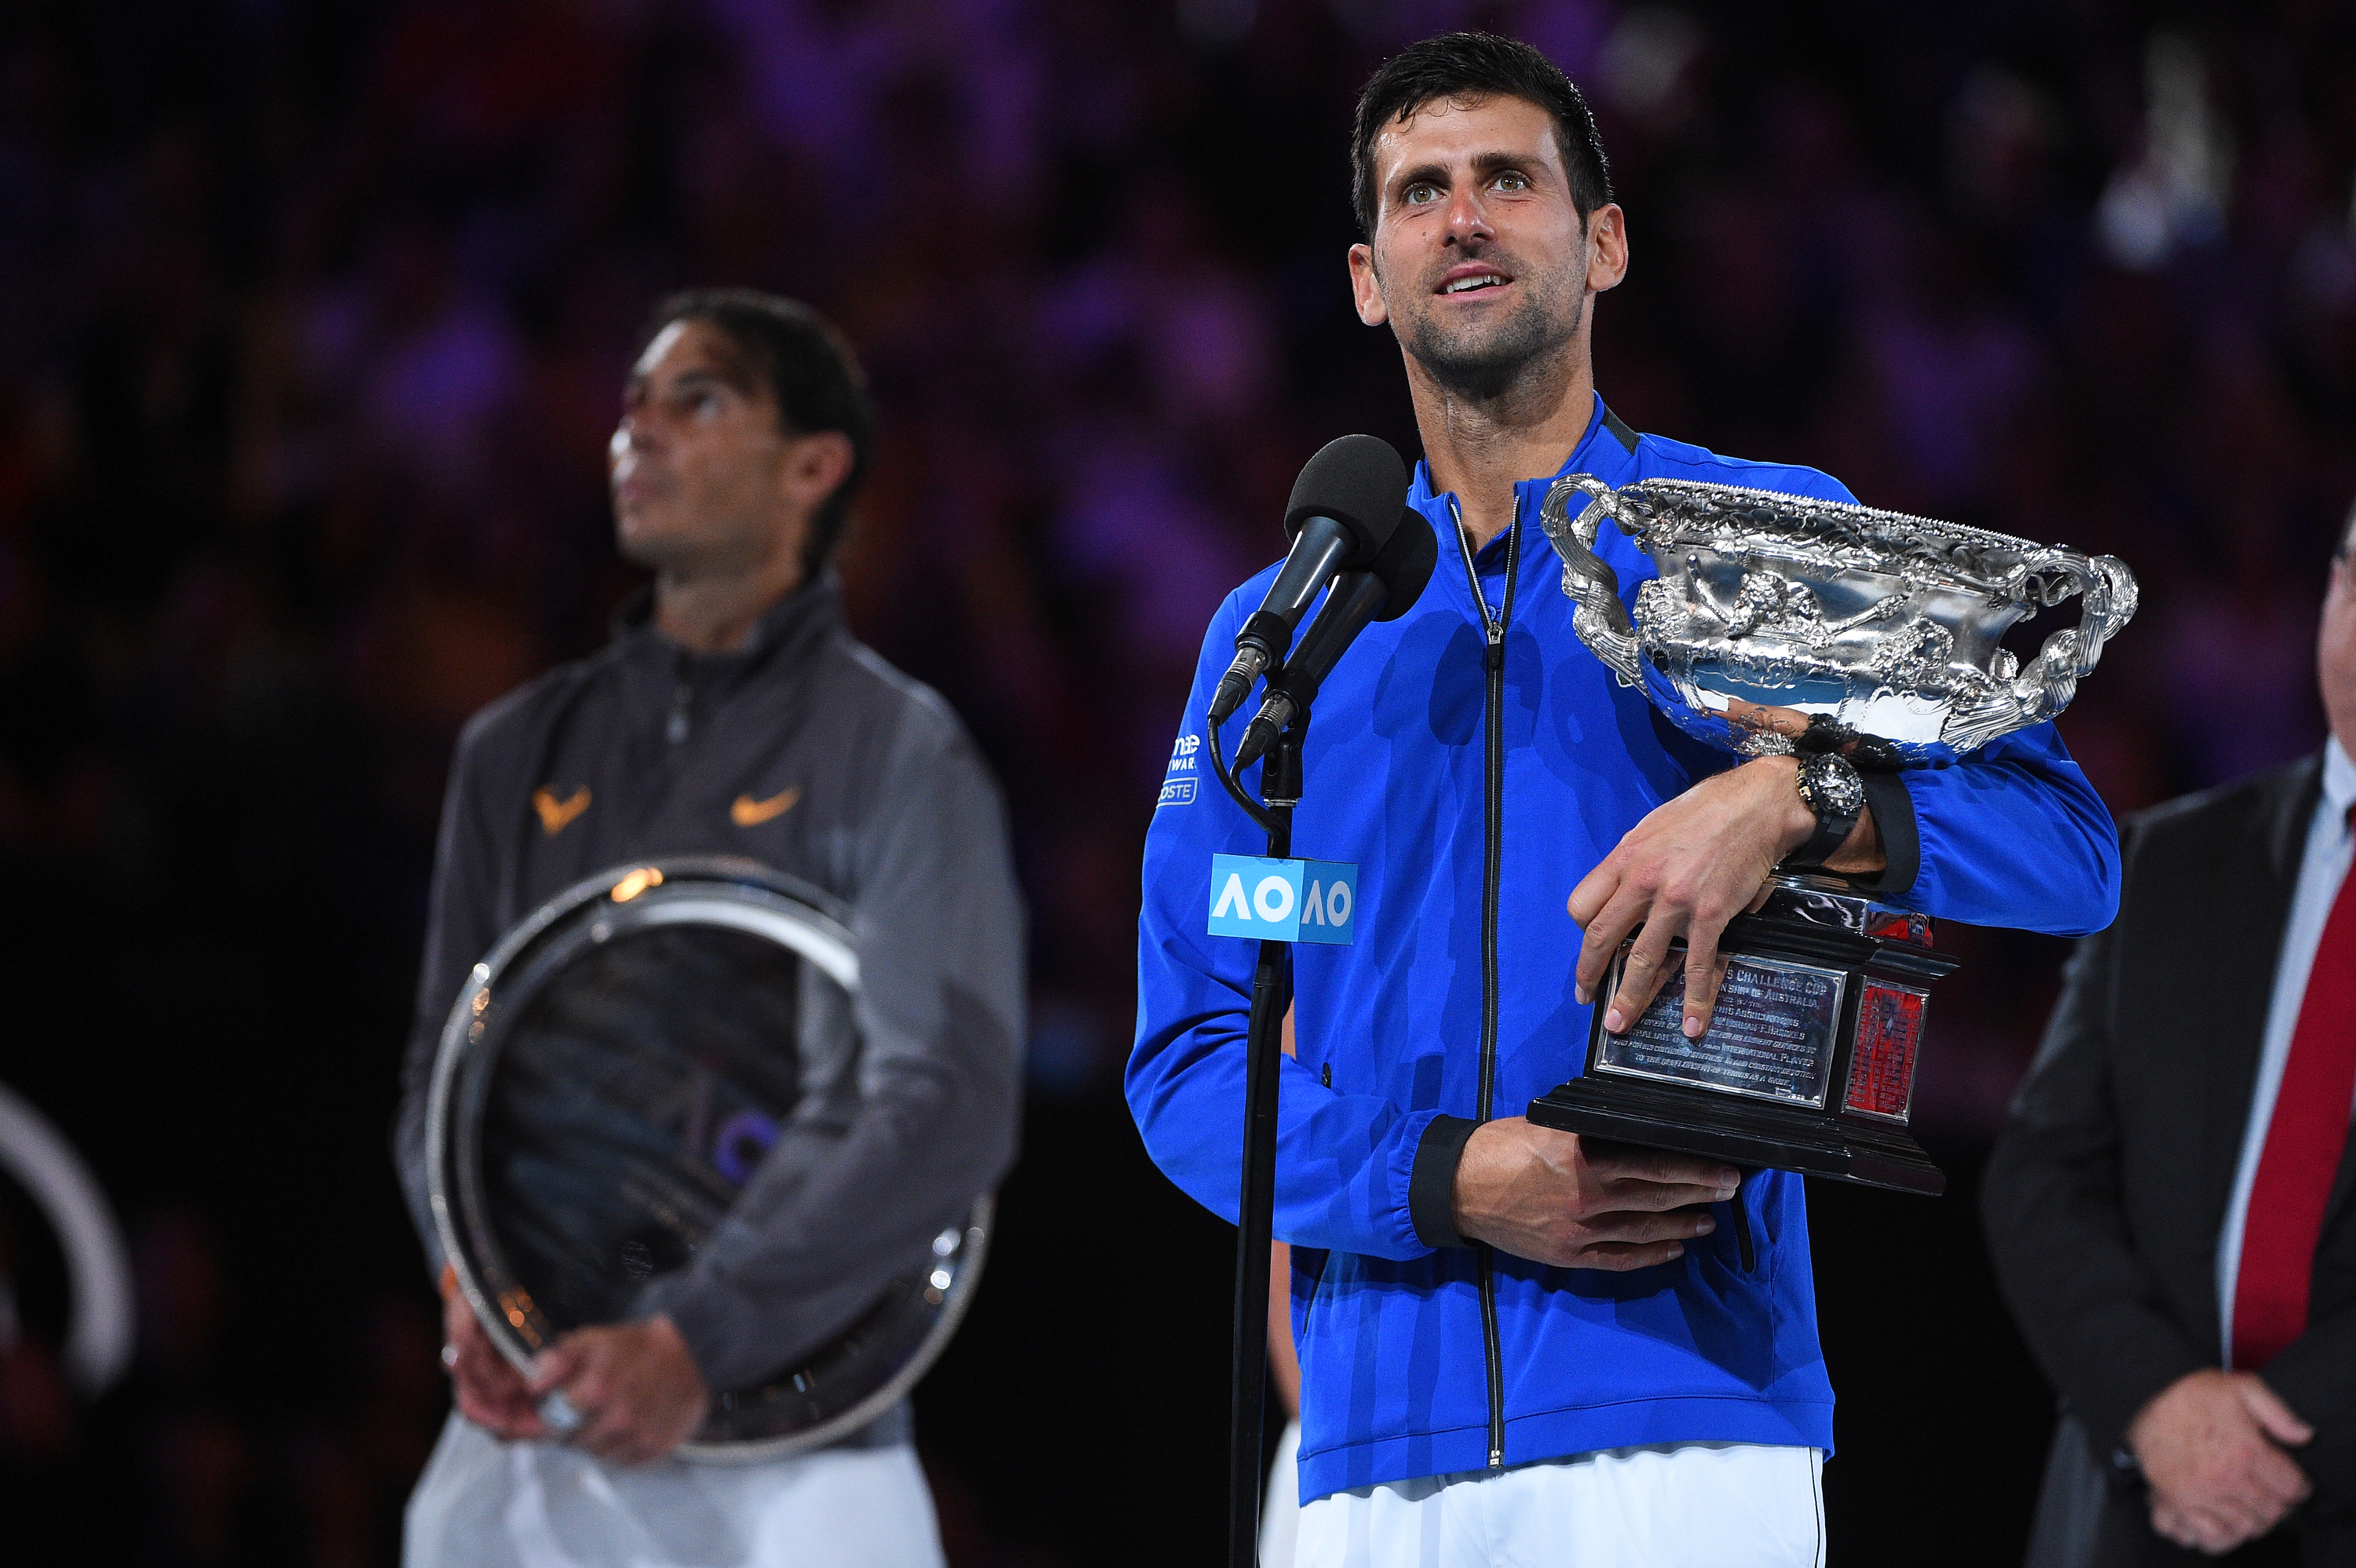 Novak Djokovic and Rafael Nadal on the podium during the trophy presentation at the 2019 Australian Open